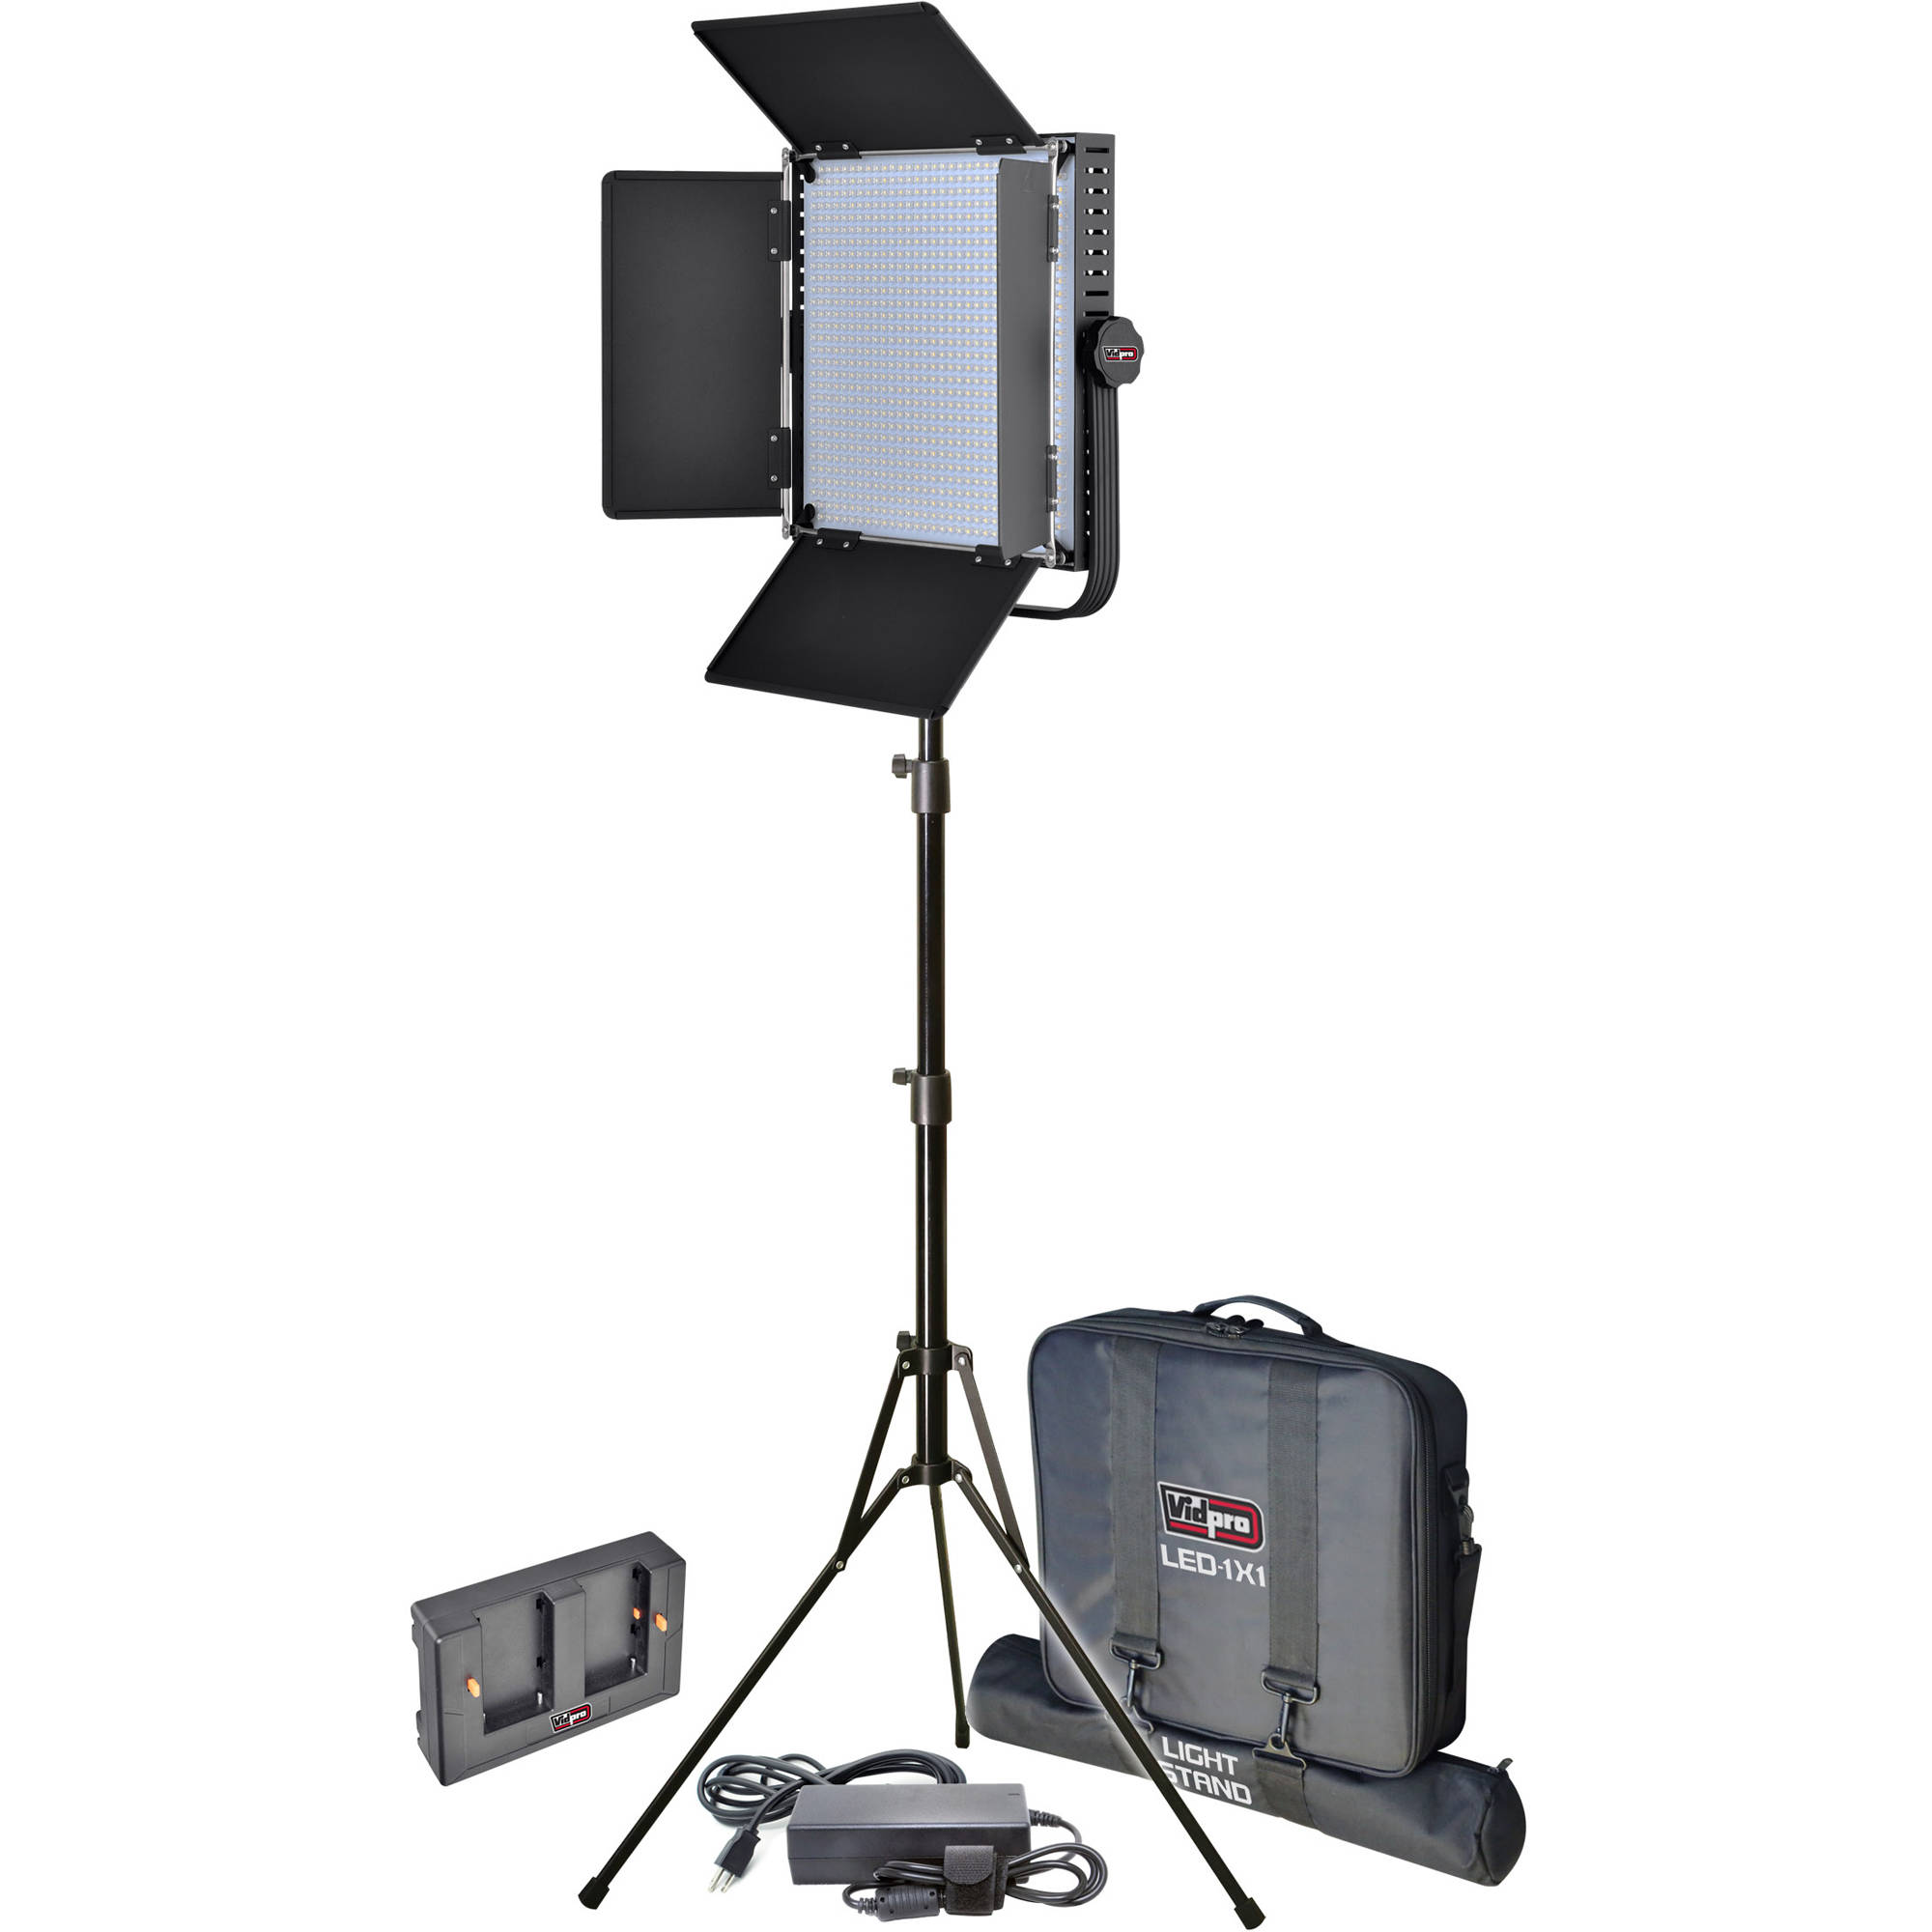 Led Studio Light Repair: Vidpro LED 1x1 Professional Studio Lighting Kit LED-1X1 B&H